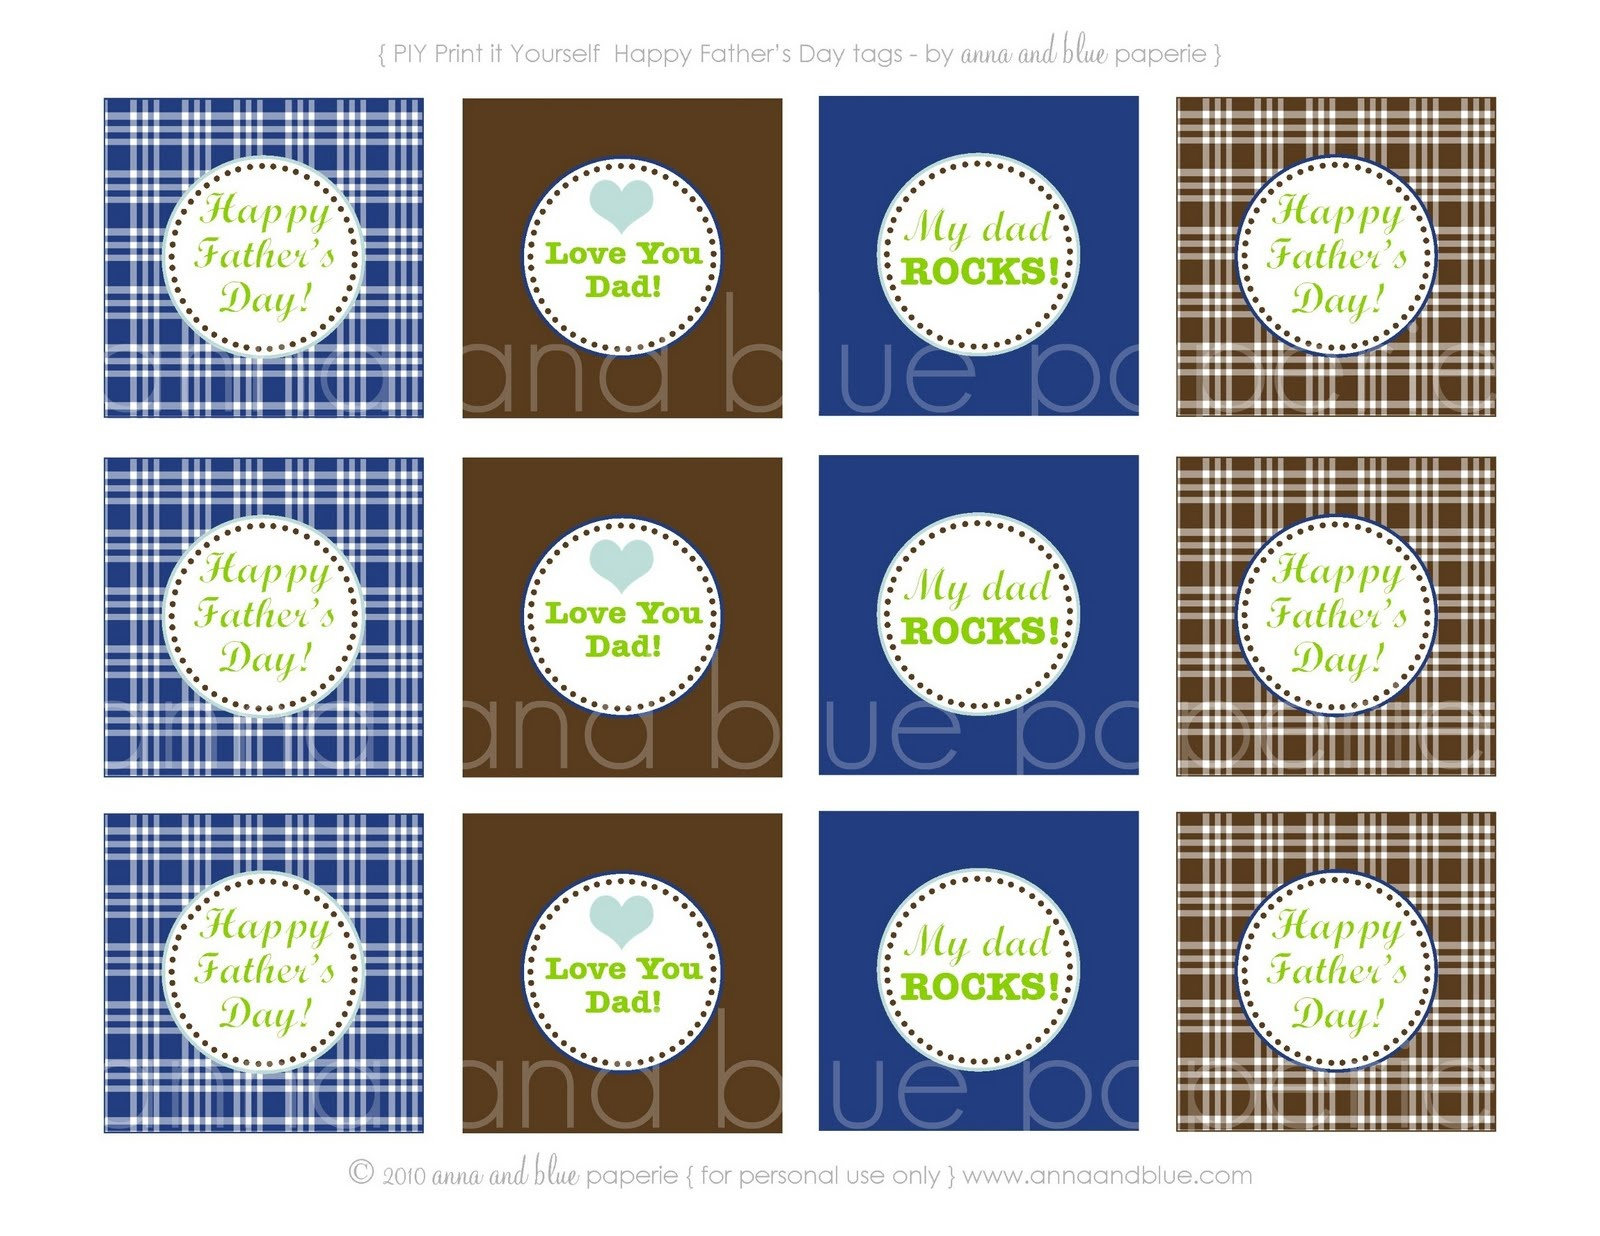 Anna And Blue Paperie: {Free Printable} Happy Father's Day! - Free Printable Father's Day Labels